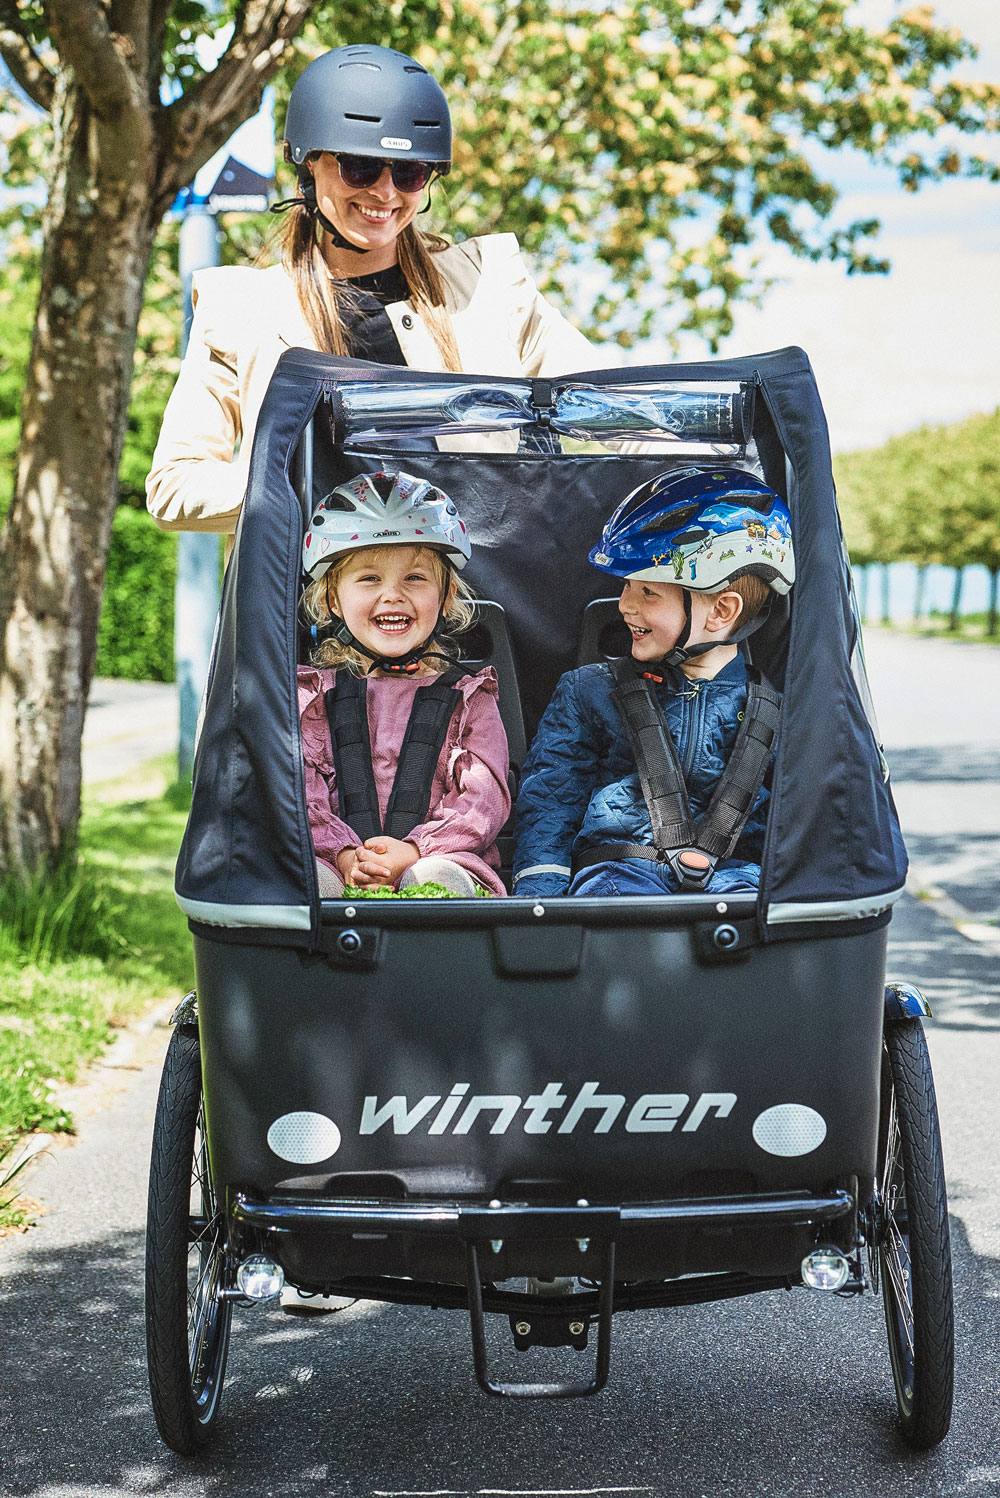 Winther Cargoo front closeup laughingkids